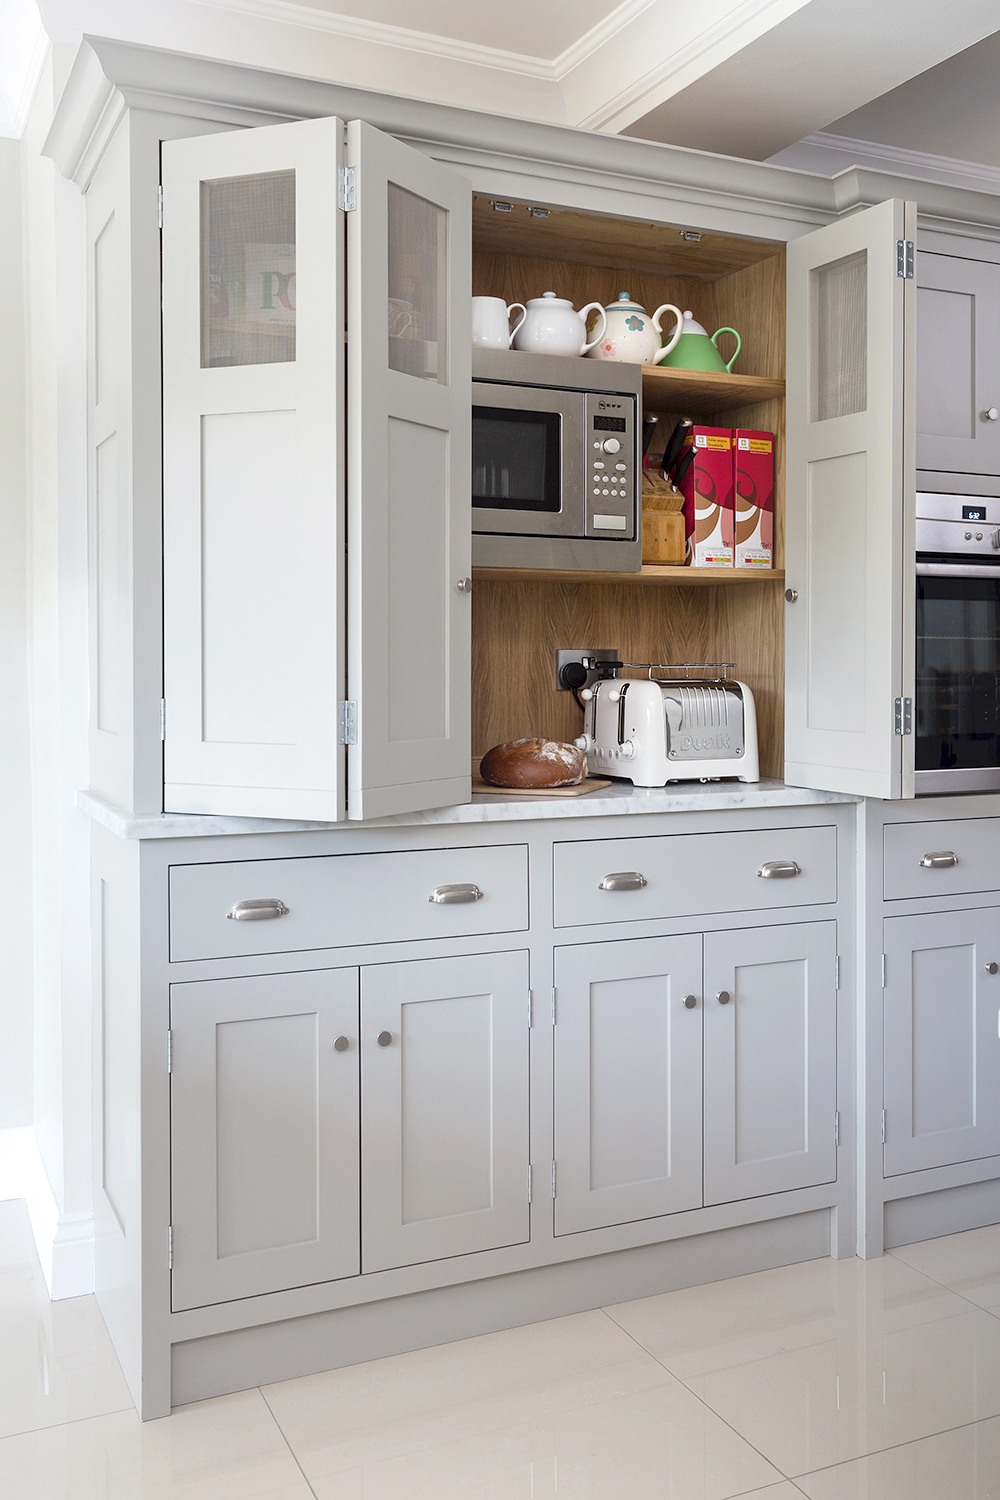 Grey breakfast pantry with bi fold doors and stainless steel hinges and handles with a Neff microwave.